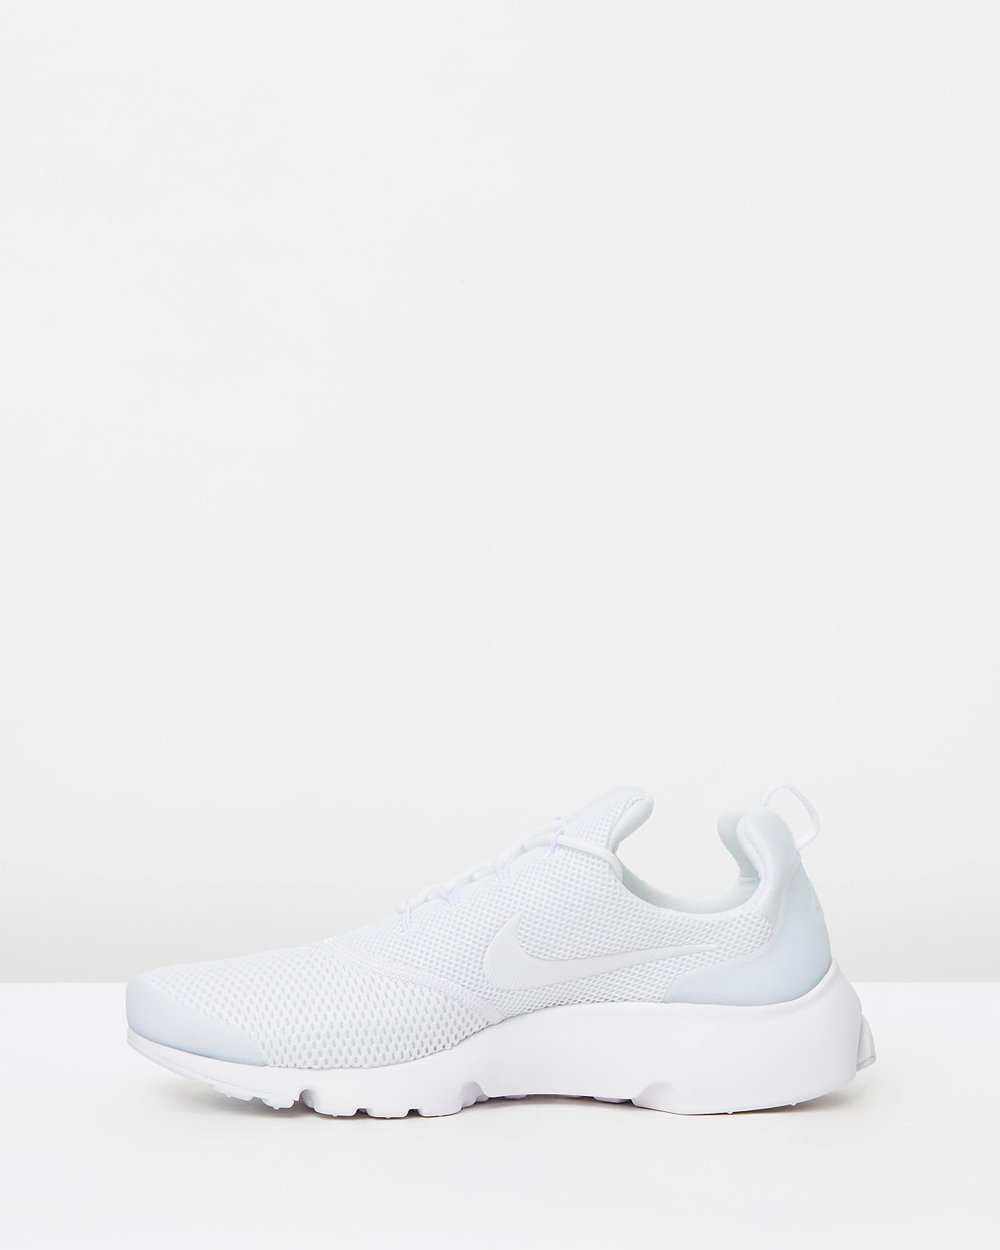 lowest price 6ebcf 1e1a4 Women's Nike Presto Fly